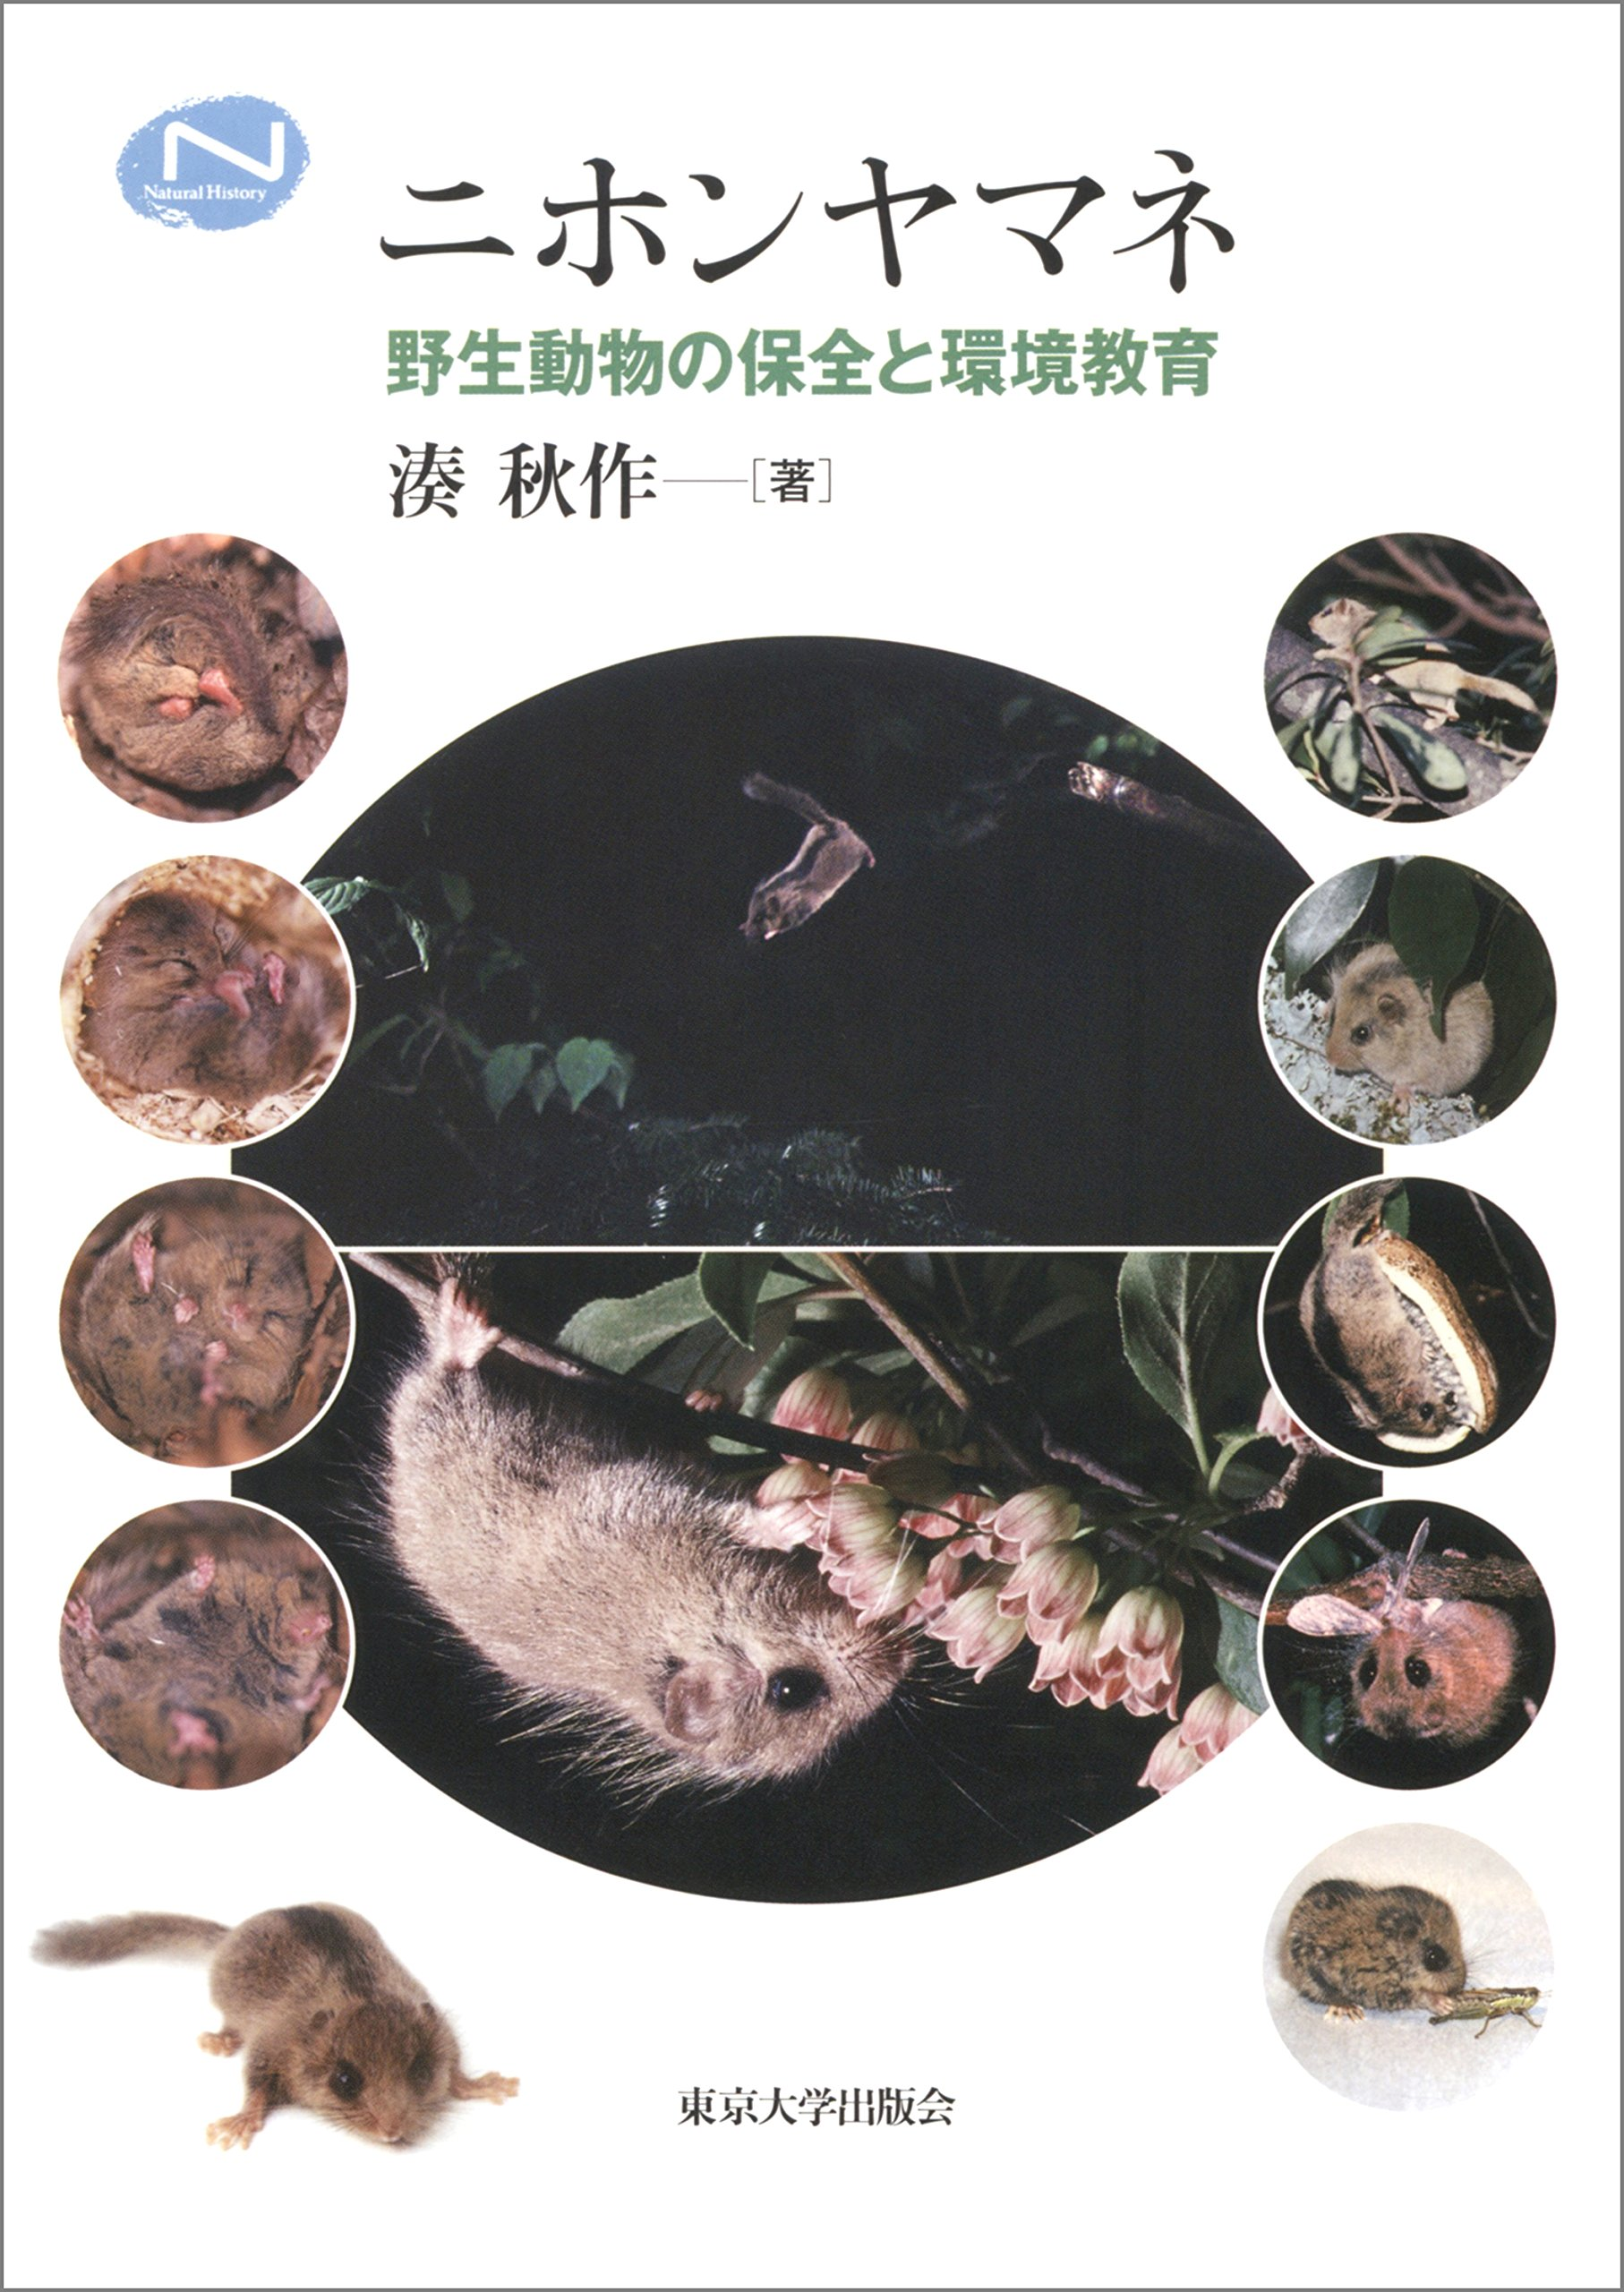 Japanese Dormouse - Conservation of Wild Animals and Environmental Education - (The University of Tokyo Press)